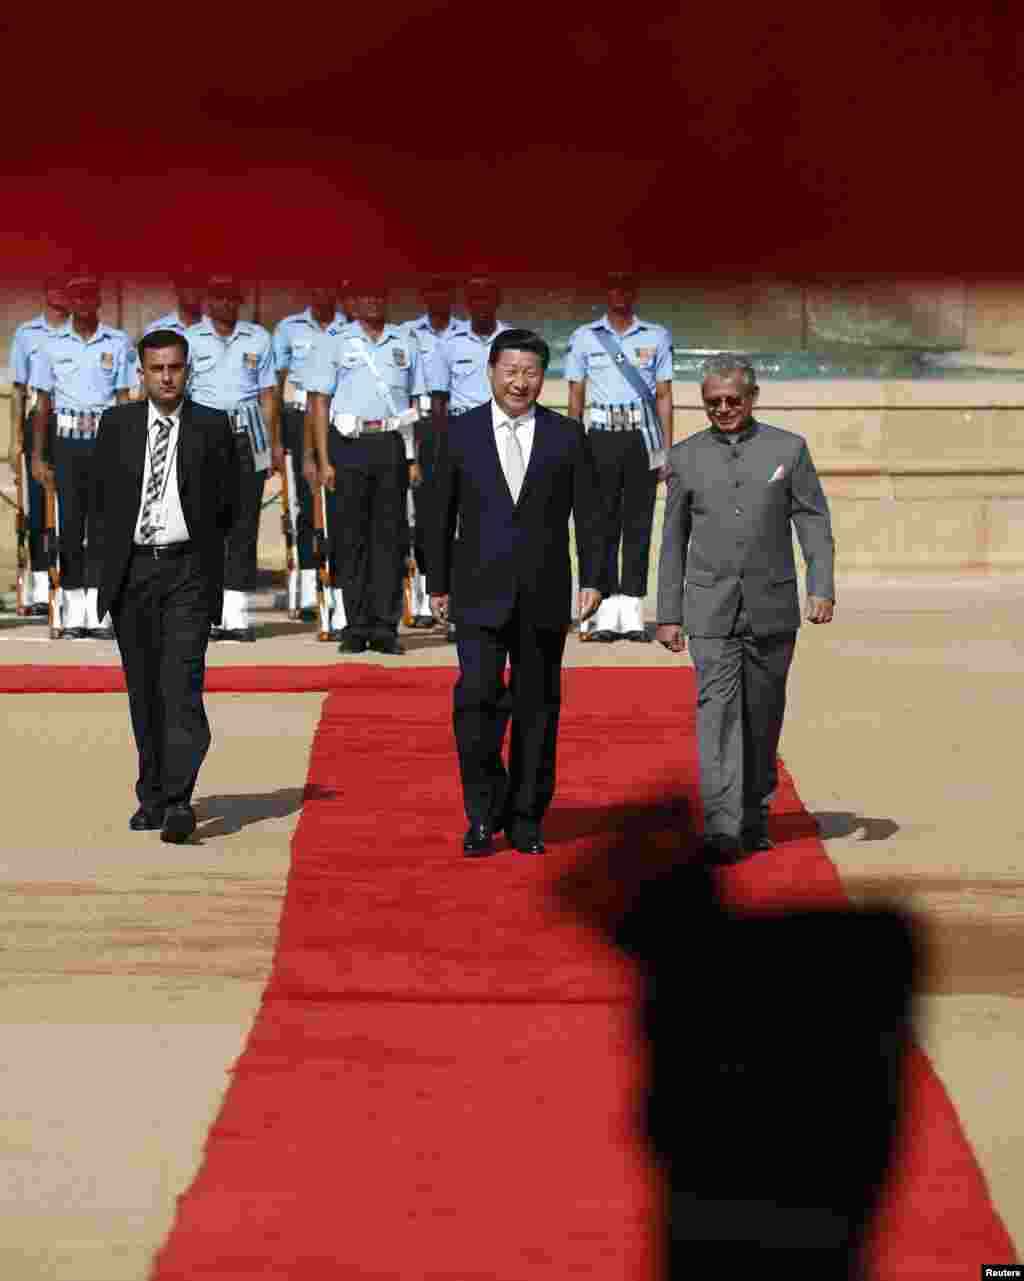 Chinese President Xi Jinping (center) walks on the red carpet after inspecting a guard of honor during his ceremonial reception at the forecourt of the Rashtrapati Bhavan presidential palace in New Delhi, Sept. 18, 2014.